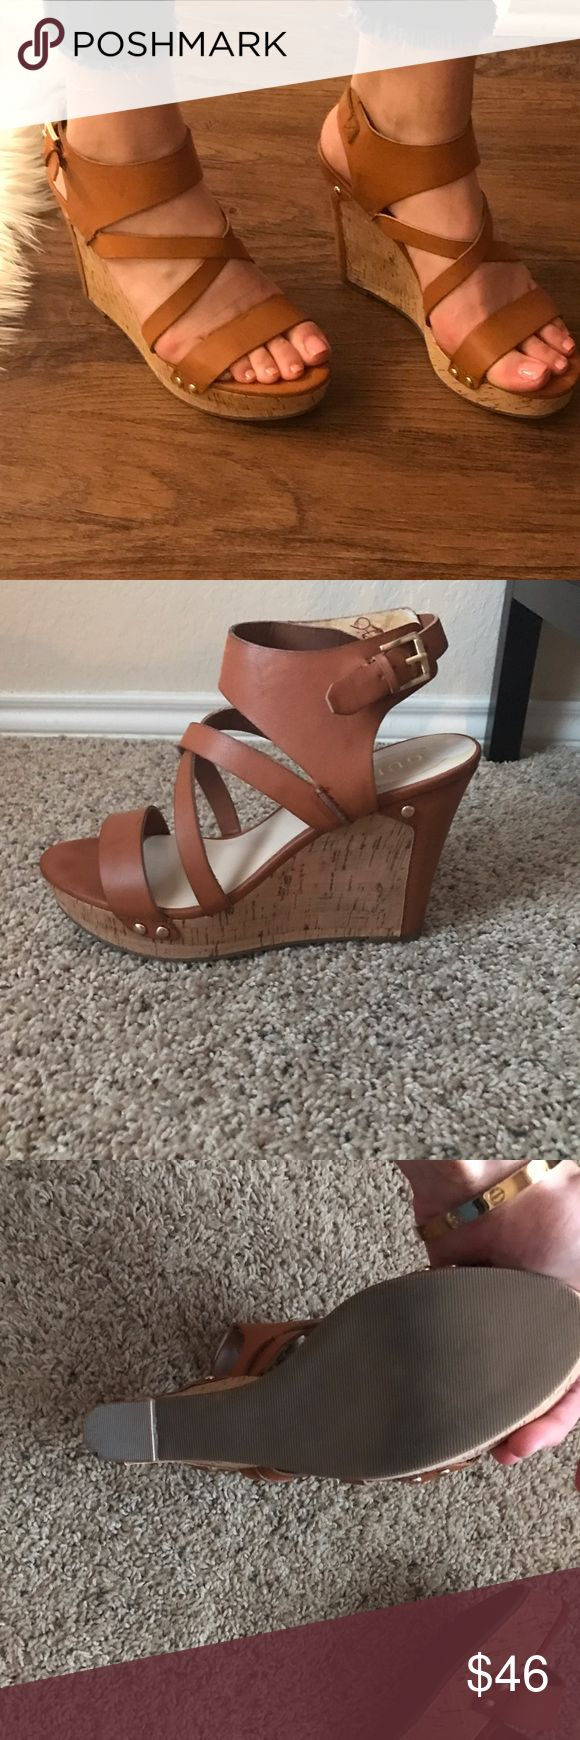 Guess size 9 camel wedges Only worn once , Like new Guess wedges ! Size 9, camel color w gold hard ware Guess Shoes Wedges